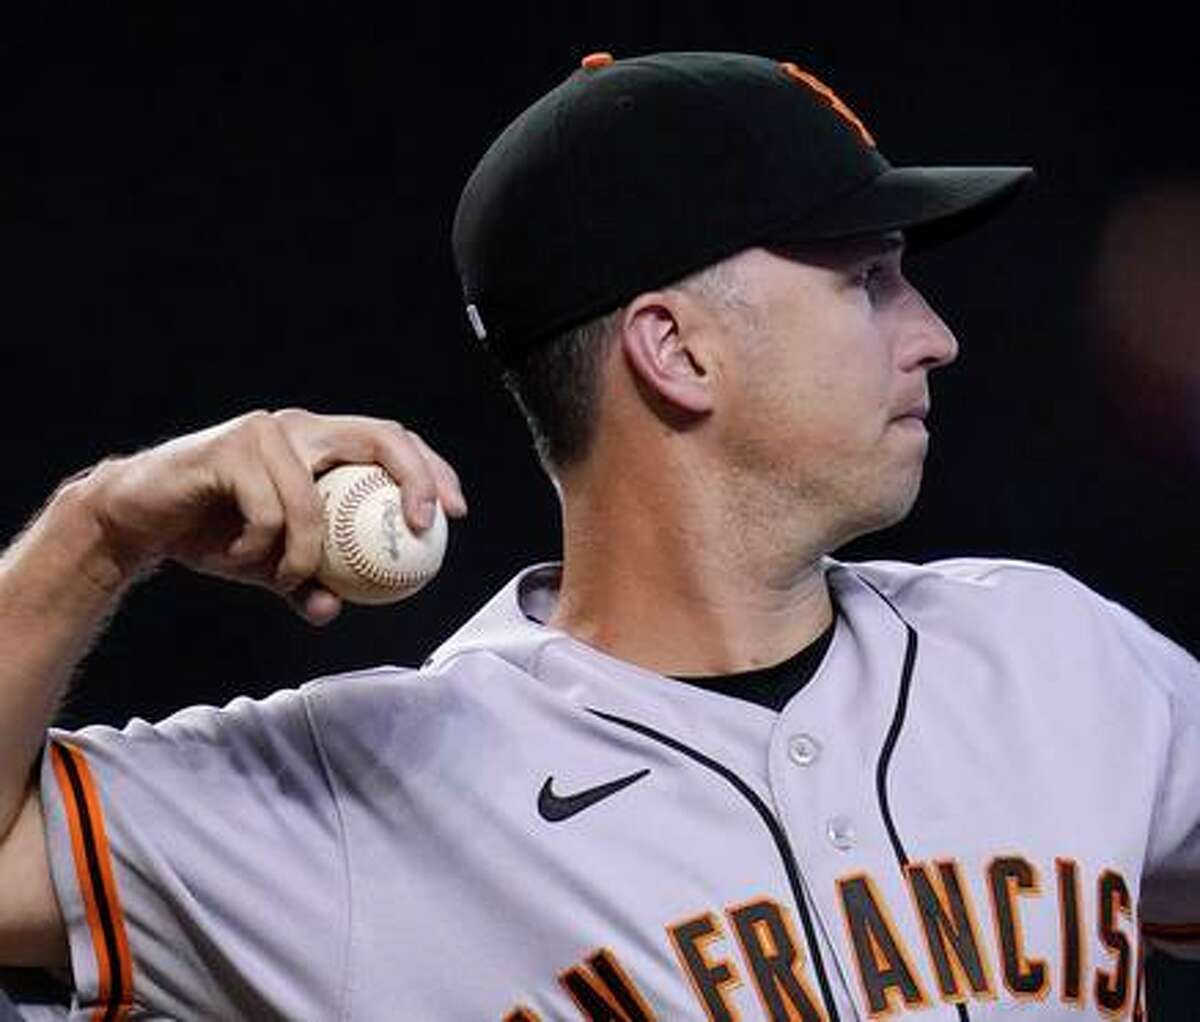 San Francisco Giants catcher Buster Posey throws the ball back to the pitcher during the seventh inning of a baseball game against the Arizona Diamondbacks, Thursday, Aug. 5, 2021, in Phoenix. The Giants defeated the Diamondbacks 5-4. (AP Photo/Ross D. Franklin)